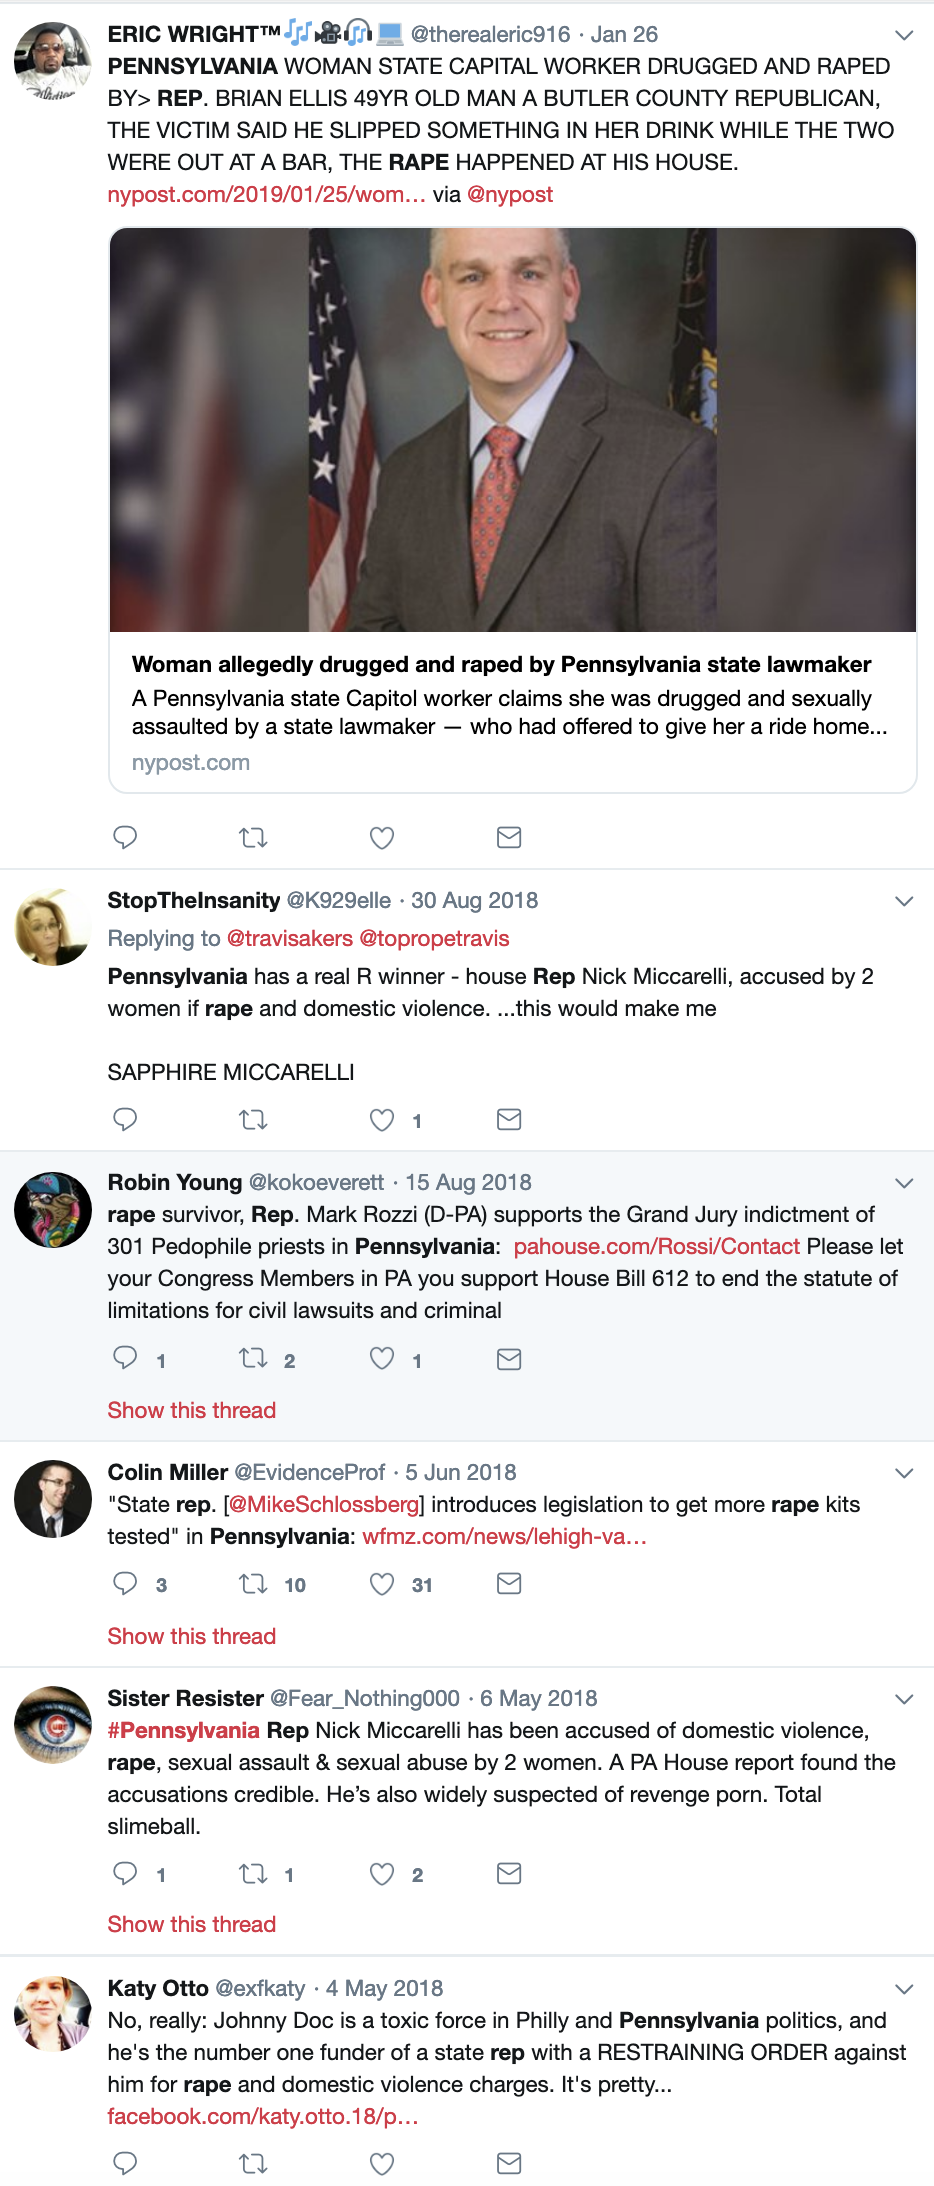 Screen-Shot-2019-03-19-at-1.12.35-PM Republican Accused Of Raping Unconscious Woman, Resigns Instantly Corruption Crime Donald Trump Feminism Politics Sexual Assault/Rape Top Stories